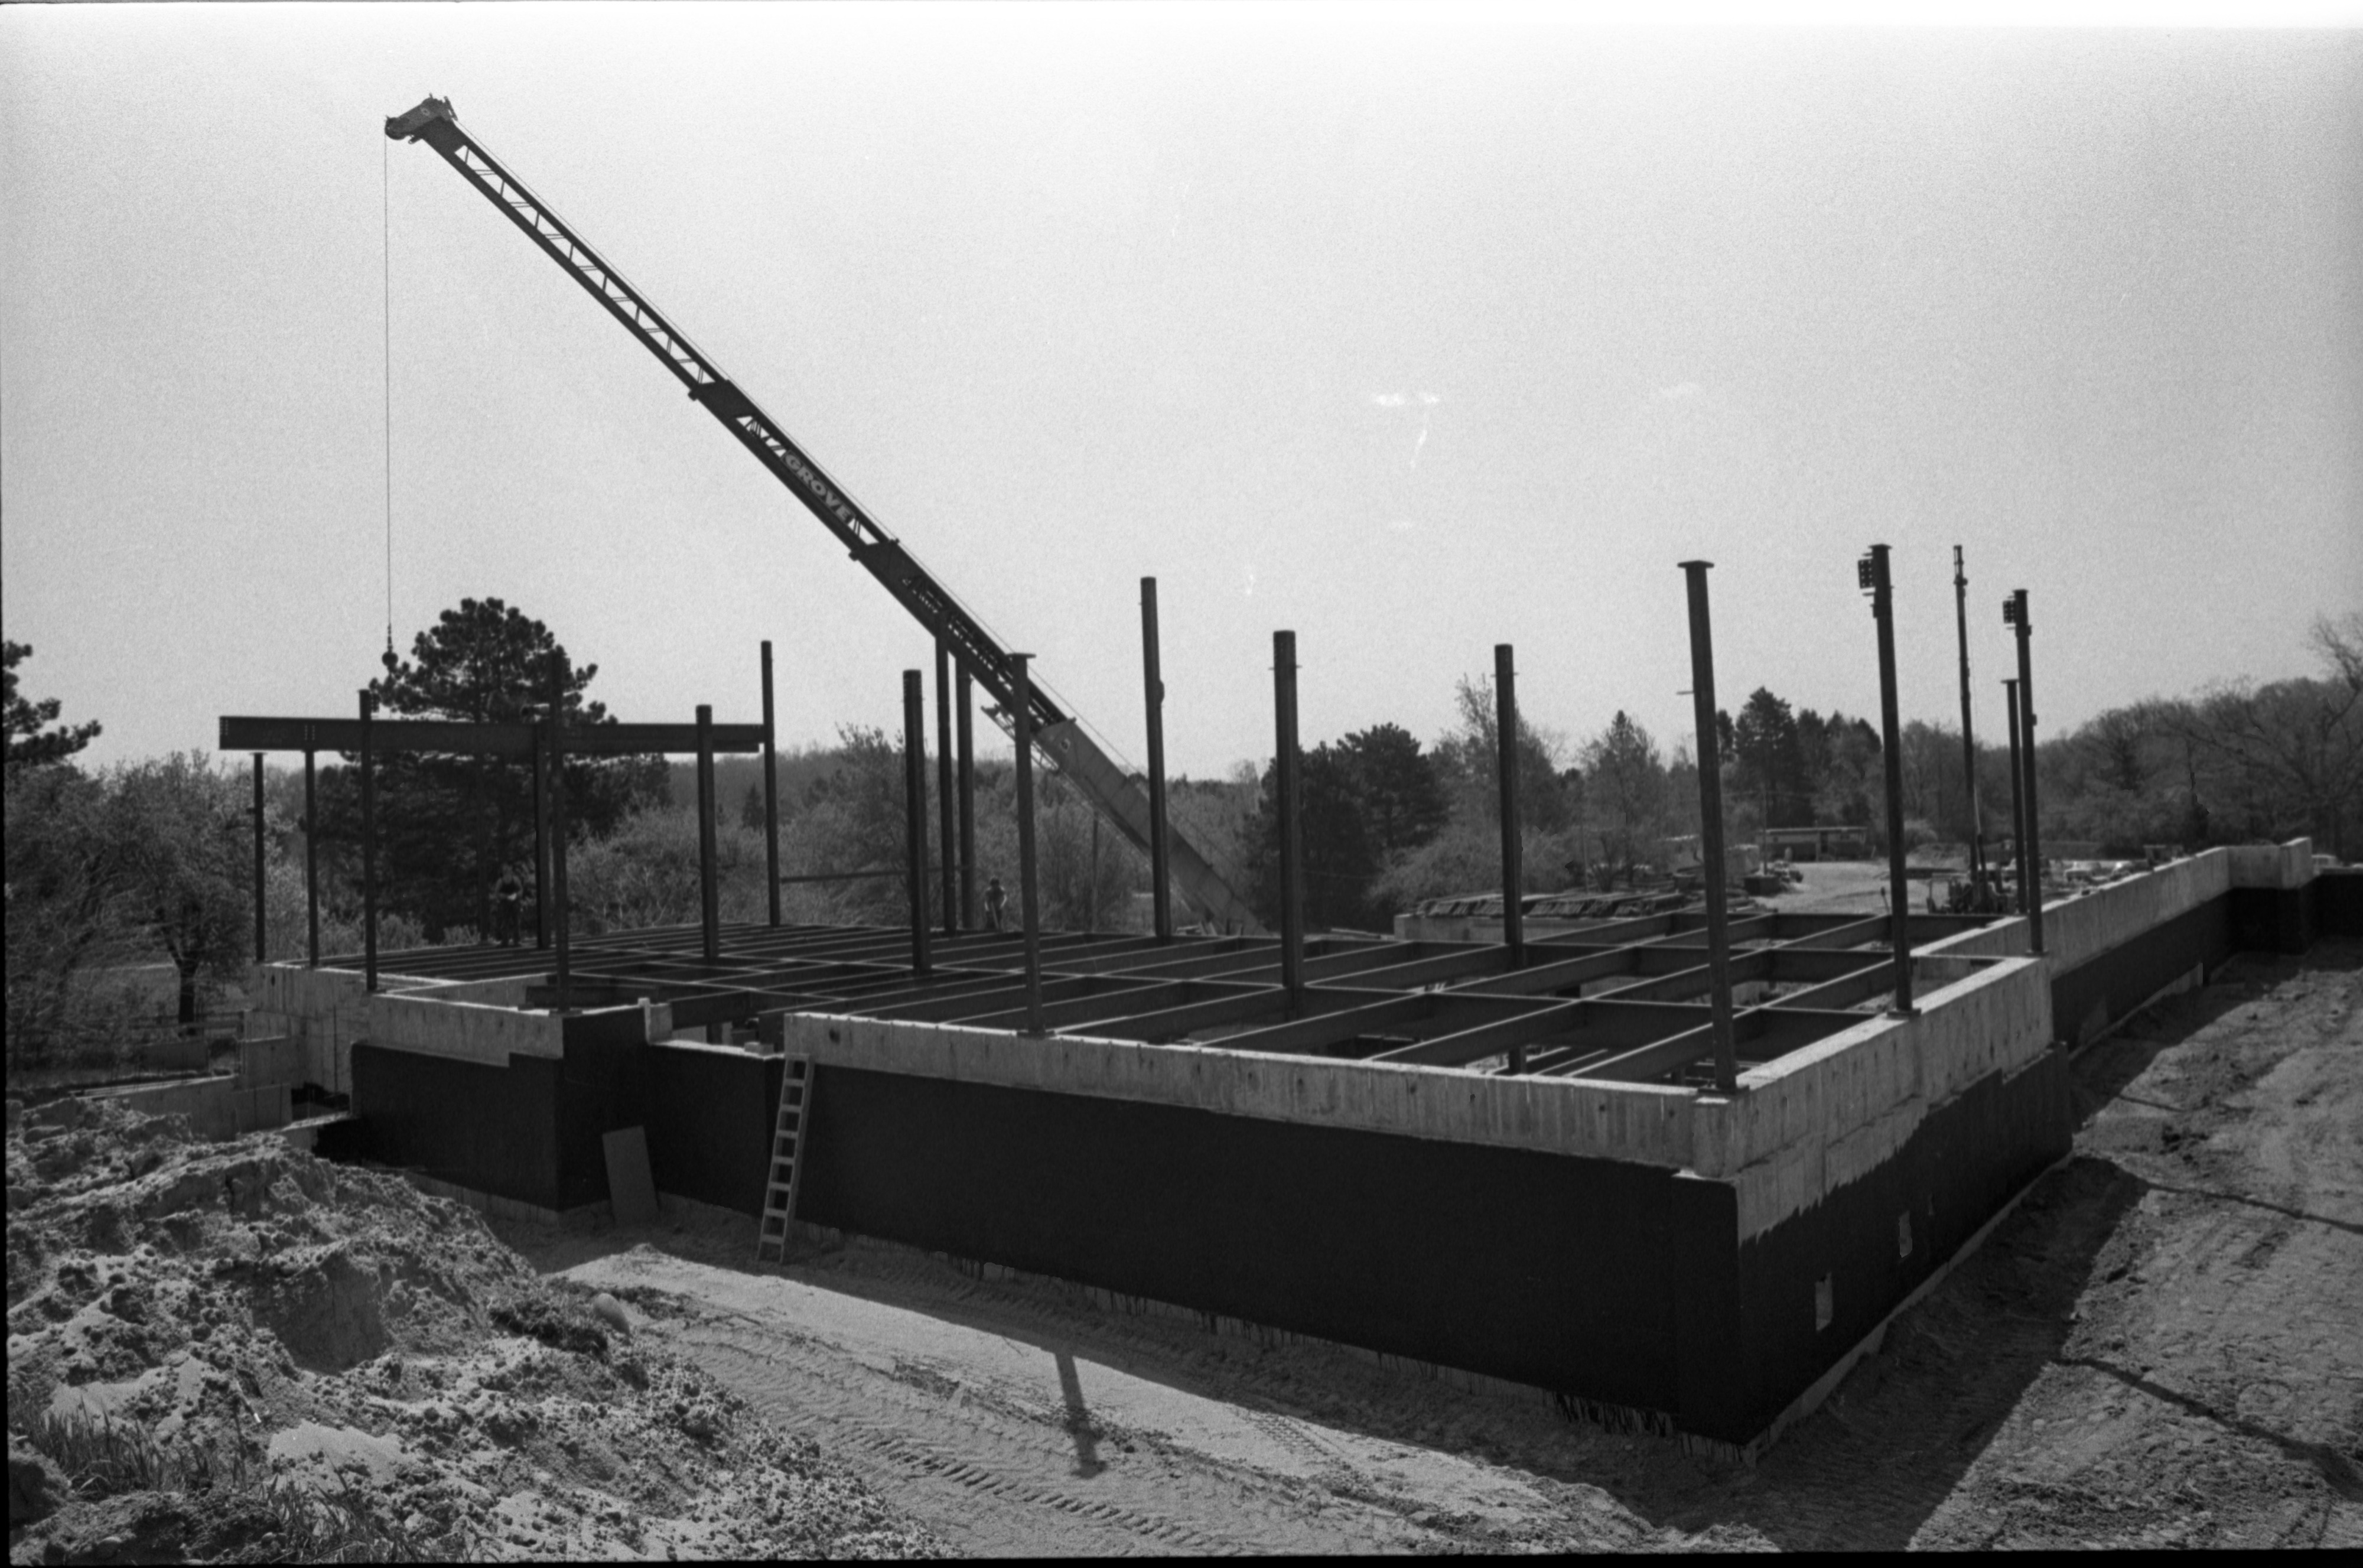 Construction Site For The Gerald R. Ford Presidential Library, May 11, 1979 image